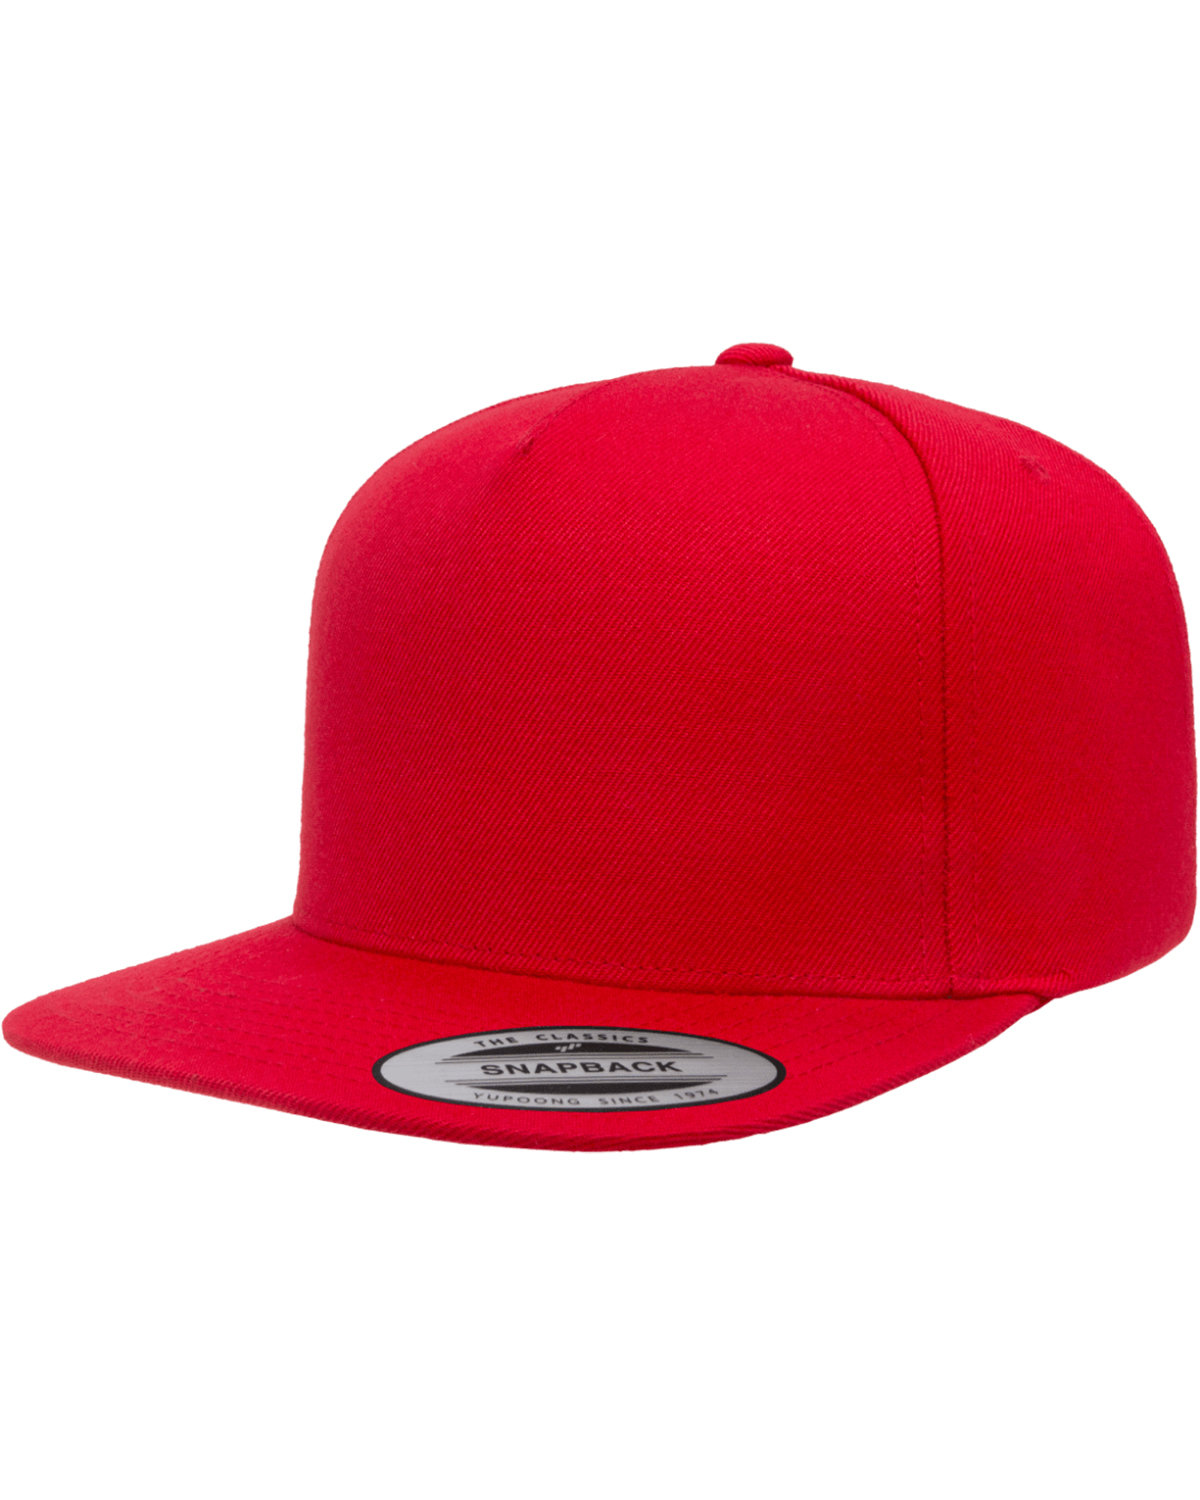 ee1f064a0a2 YP5089 Yupoong Adult 5-Panel Structured Flat Visor Classic Snapback Cap.  Touch to zoom